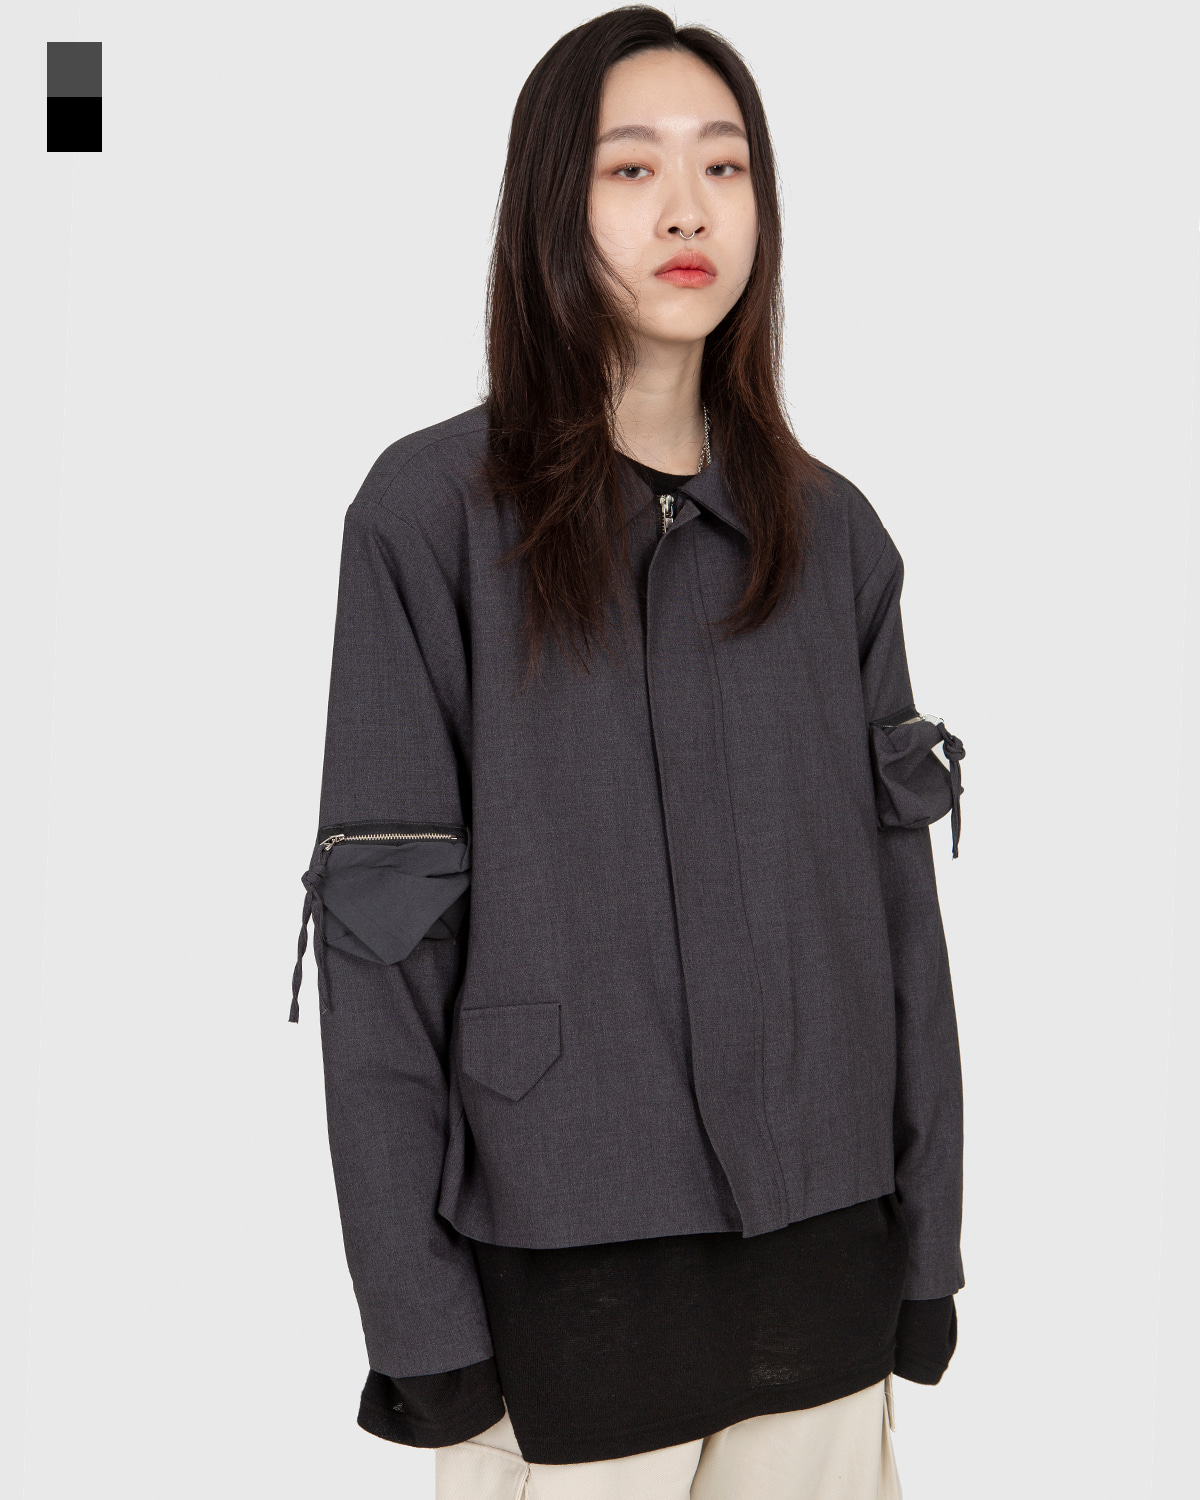 raucohouse-POCKET POLY ZIP UP SHORT JACKET - RAUCO HOUSE♡韓國男裝外套